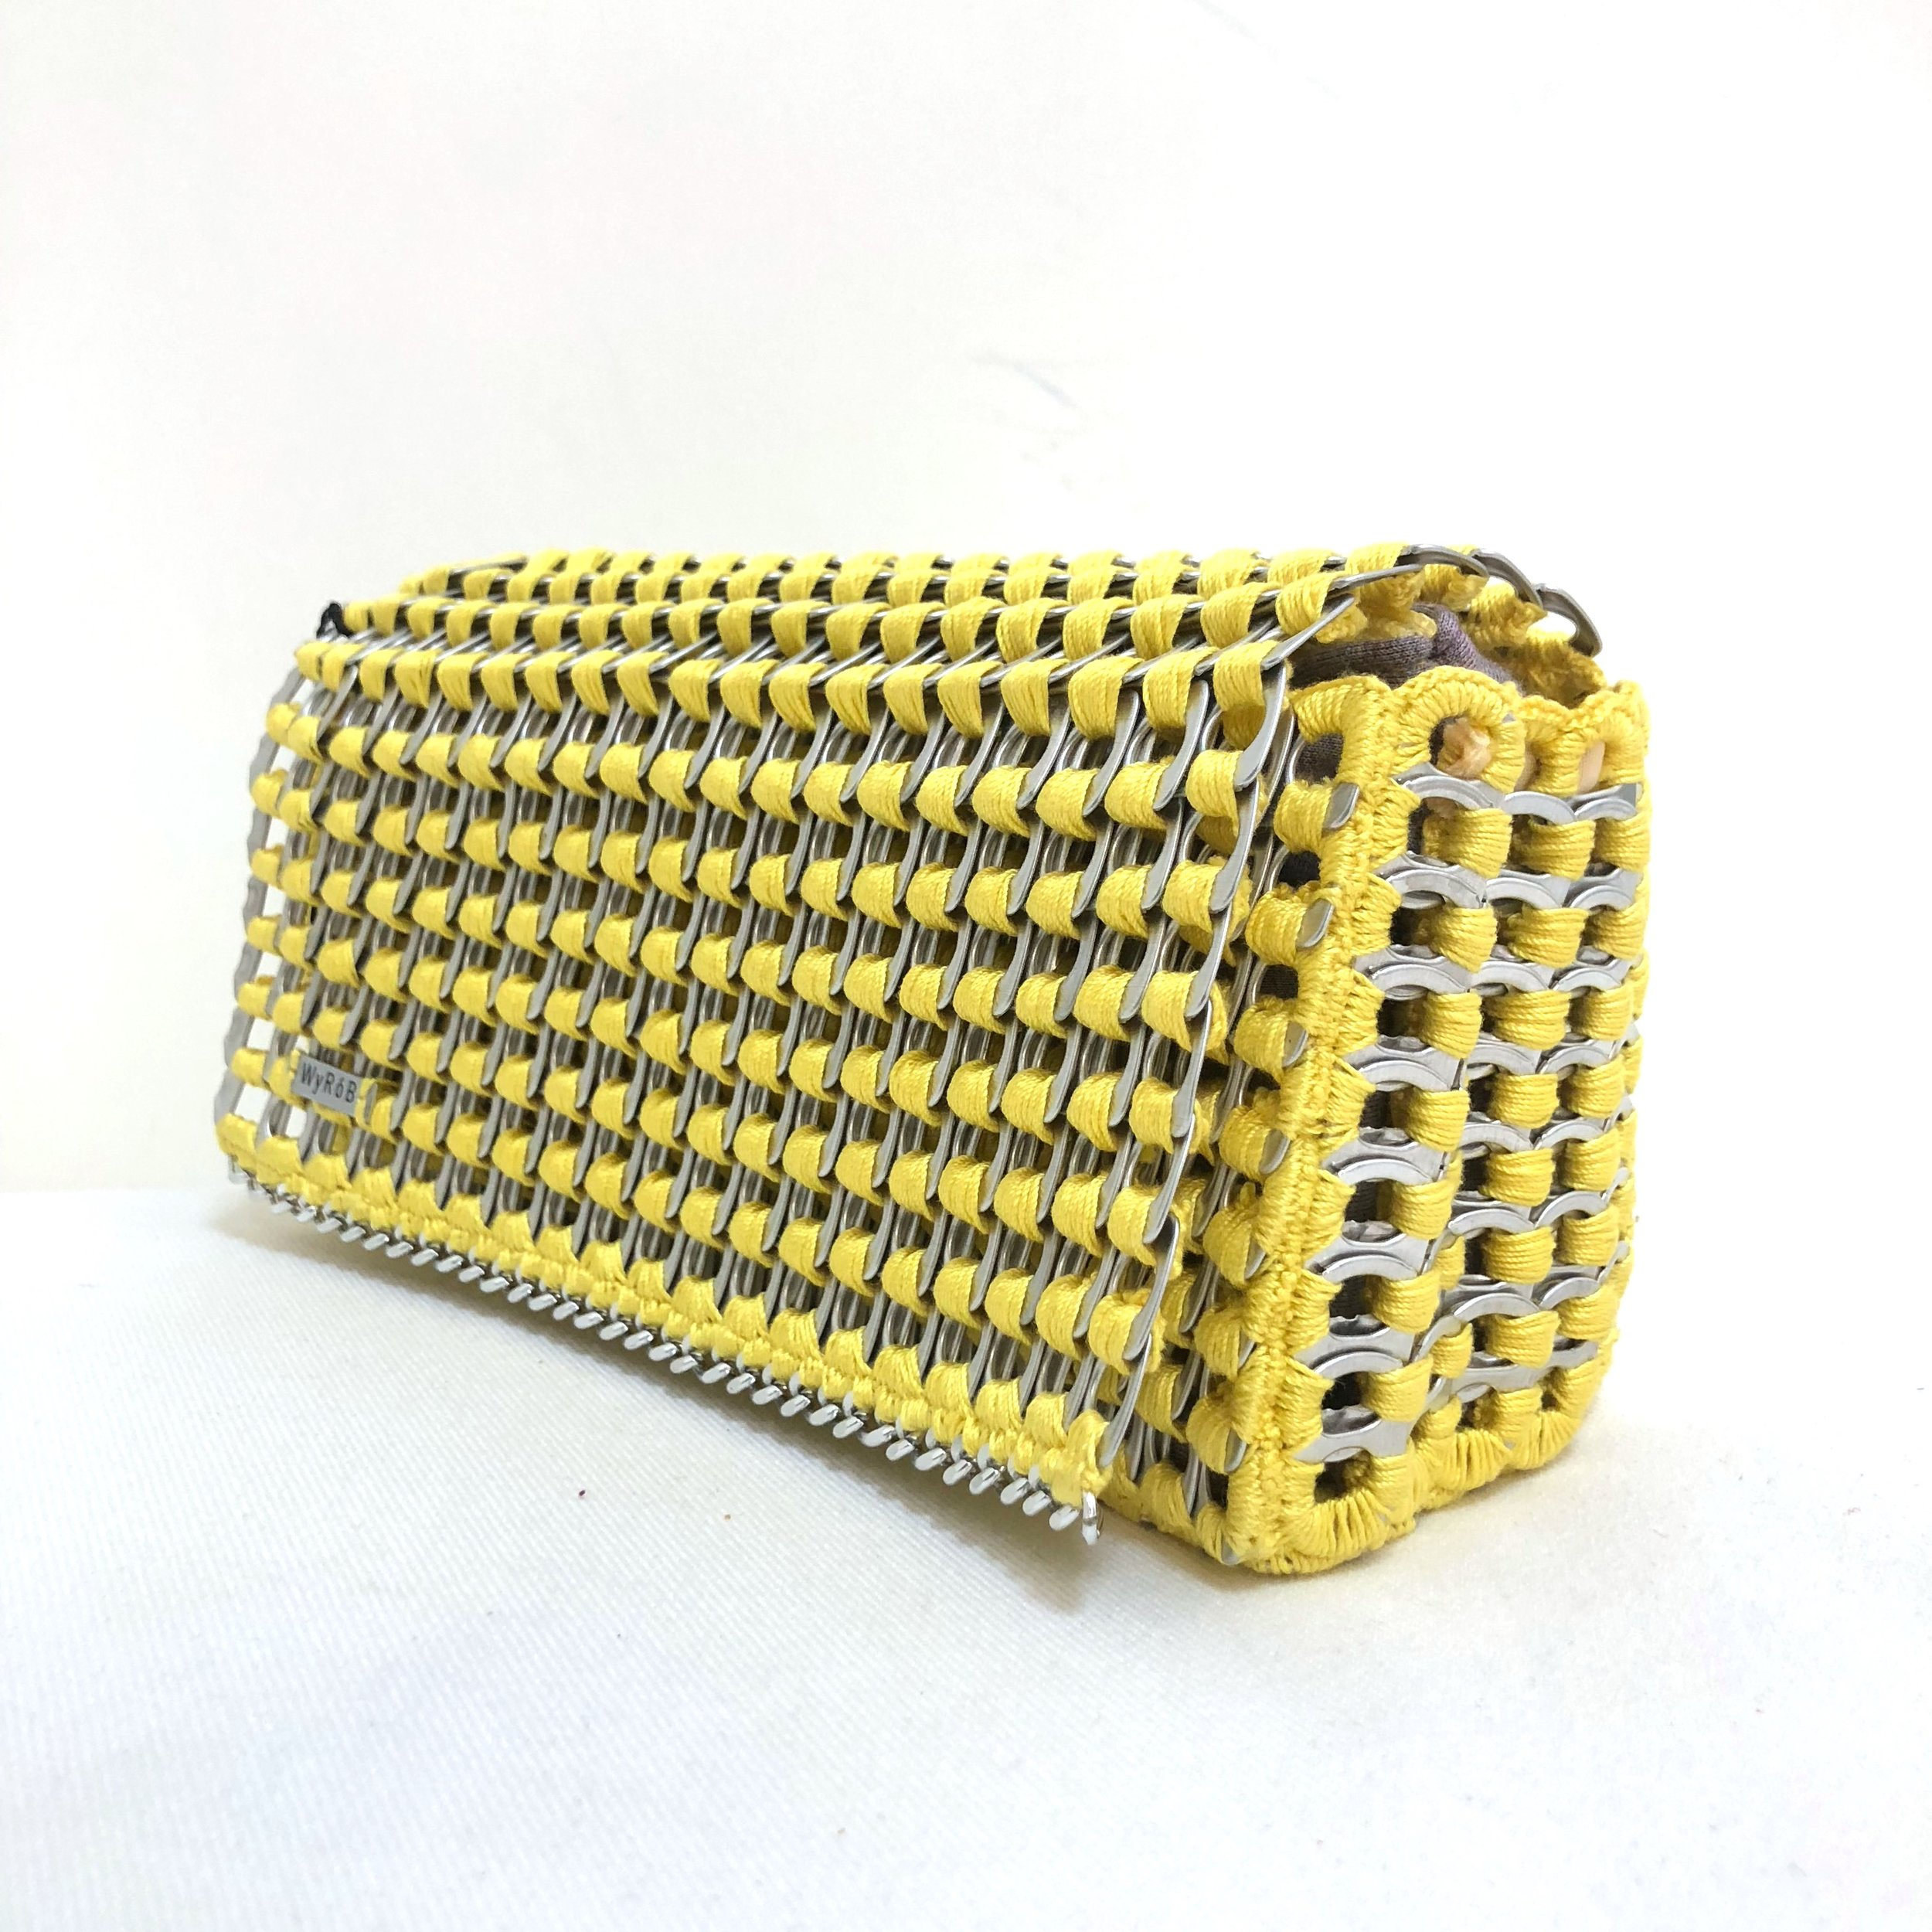 WYROB - BAGS MADE OF UP-CYCLEDSODA POP TABS